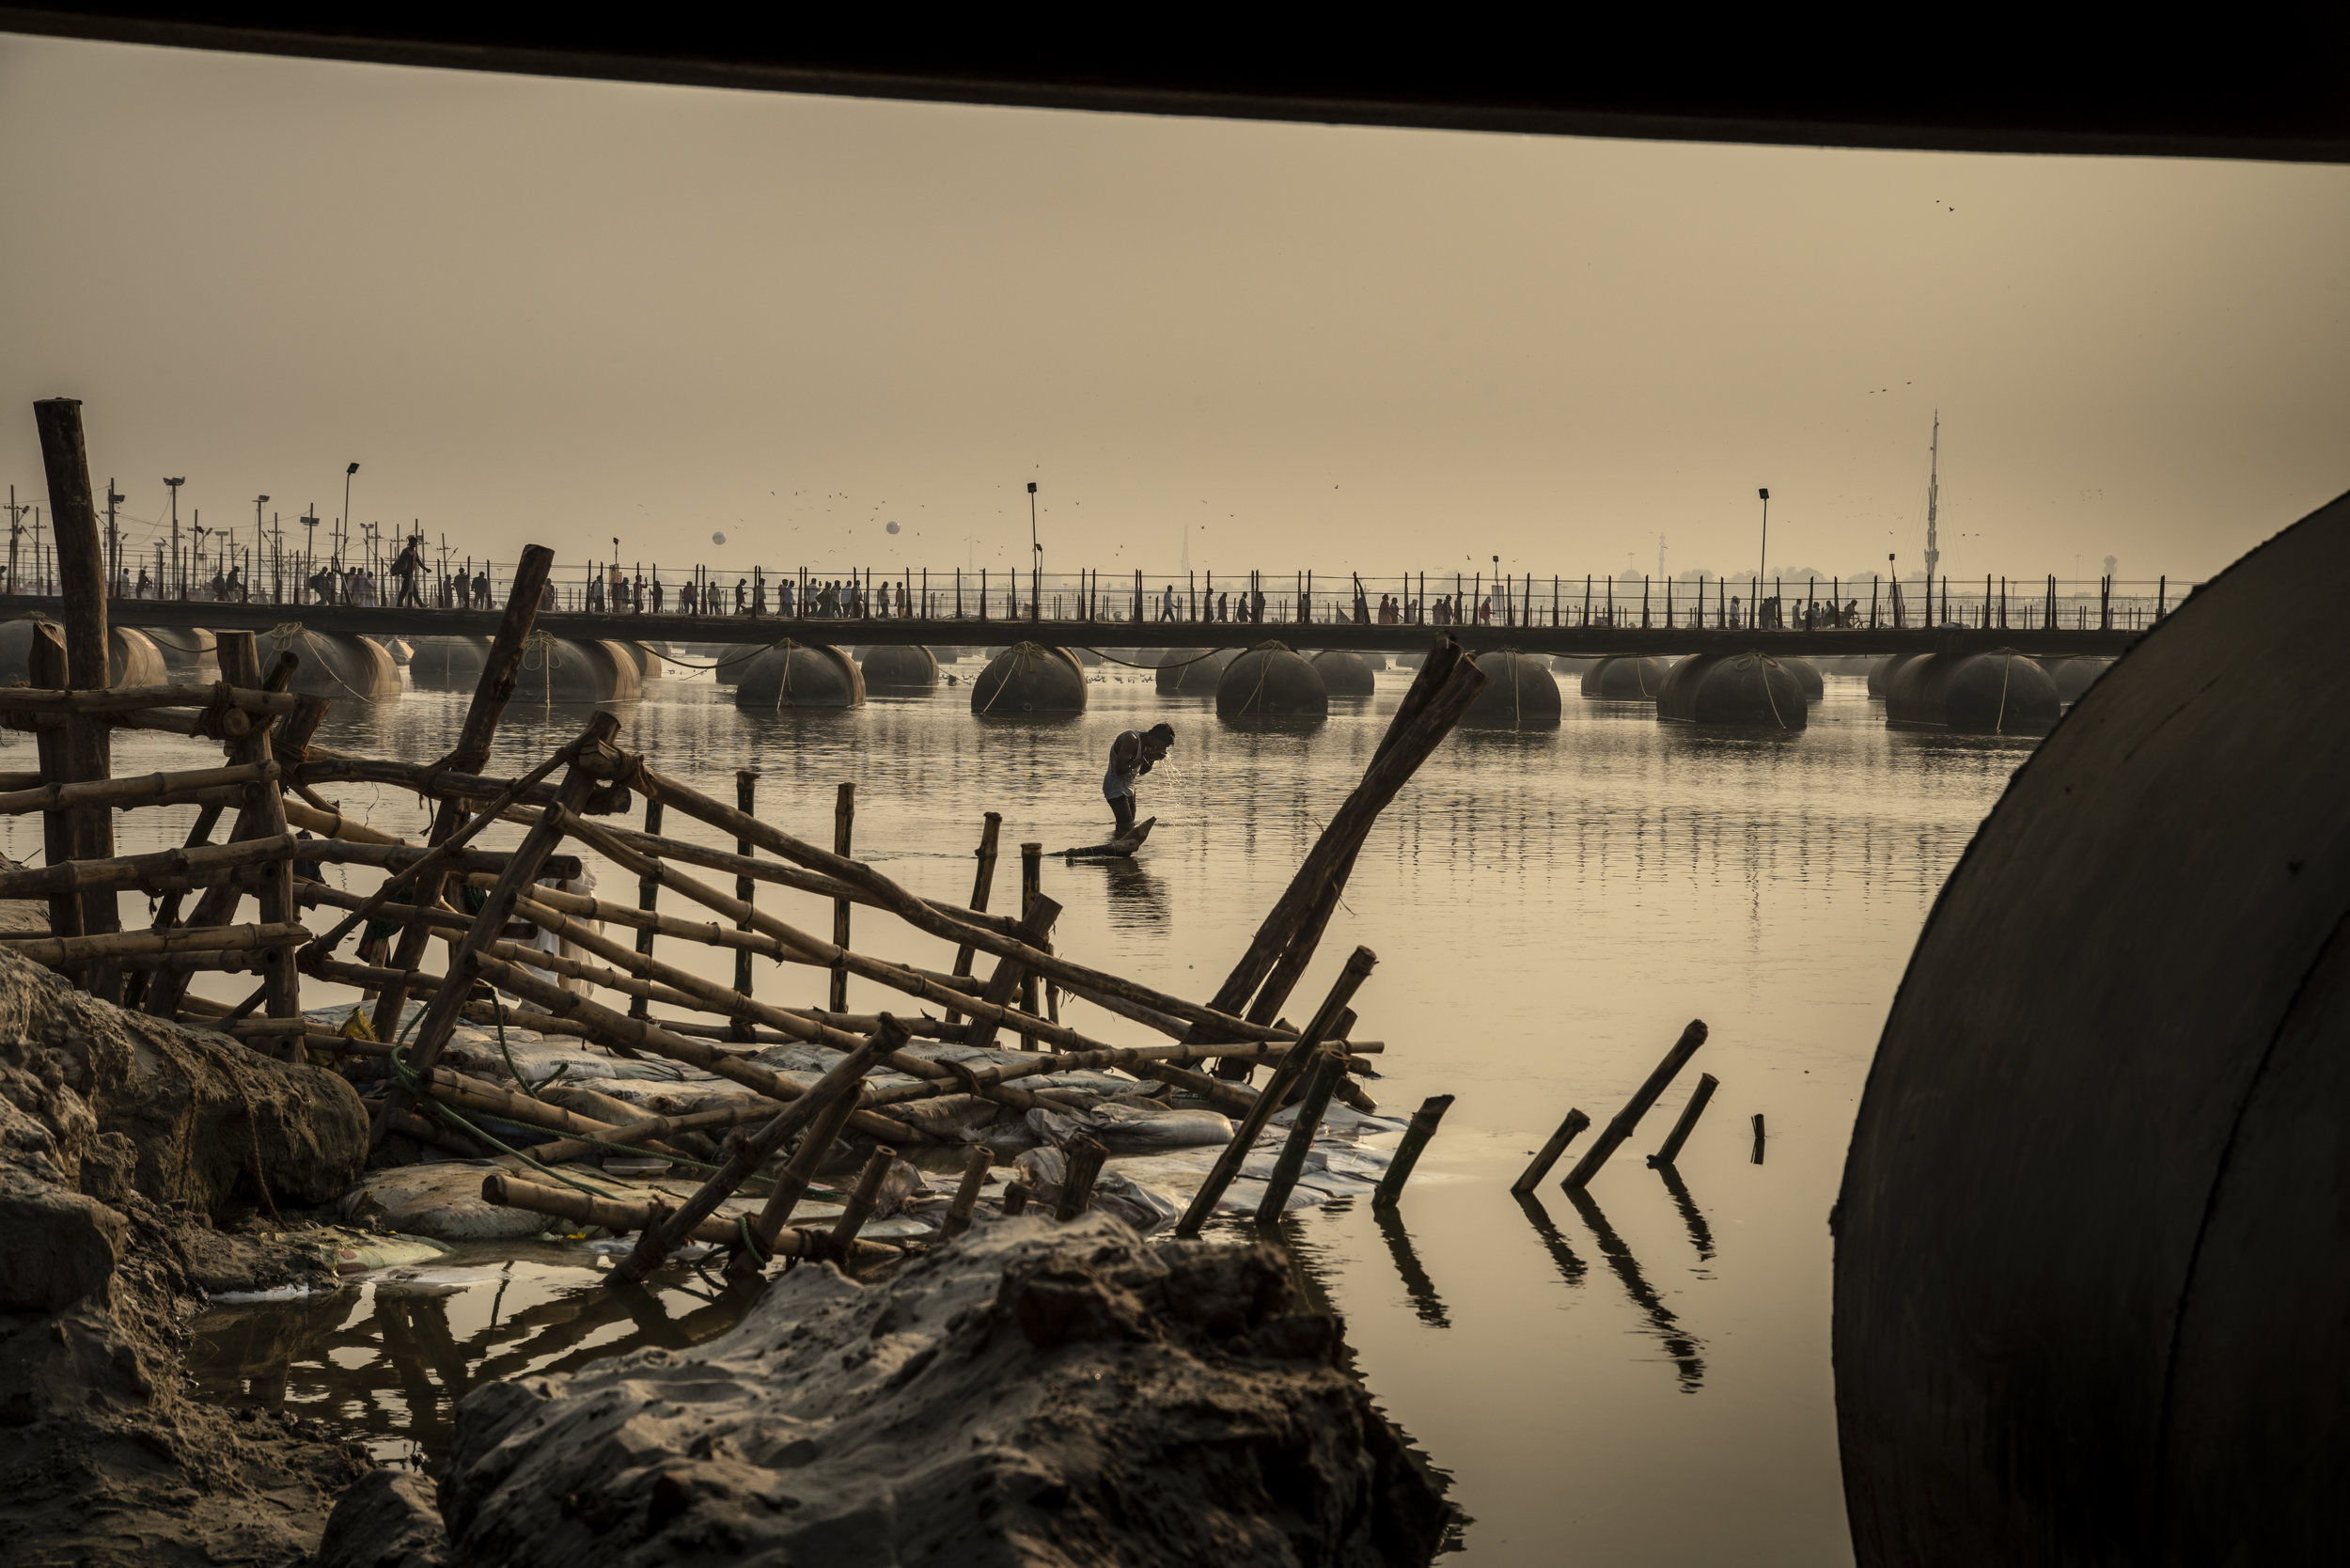 Man bathes in the Ganges betweenba series of temporary bridges